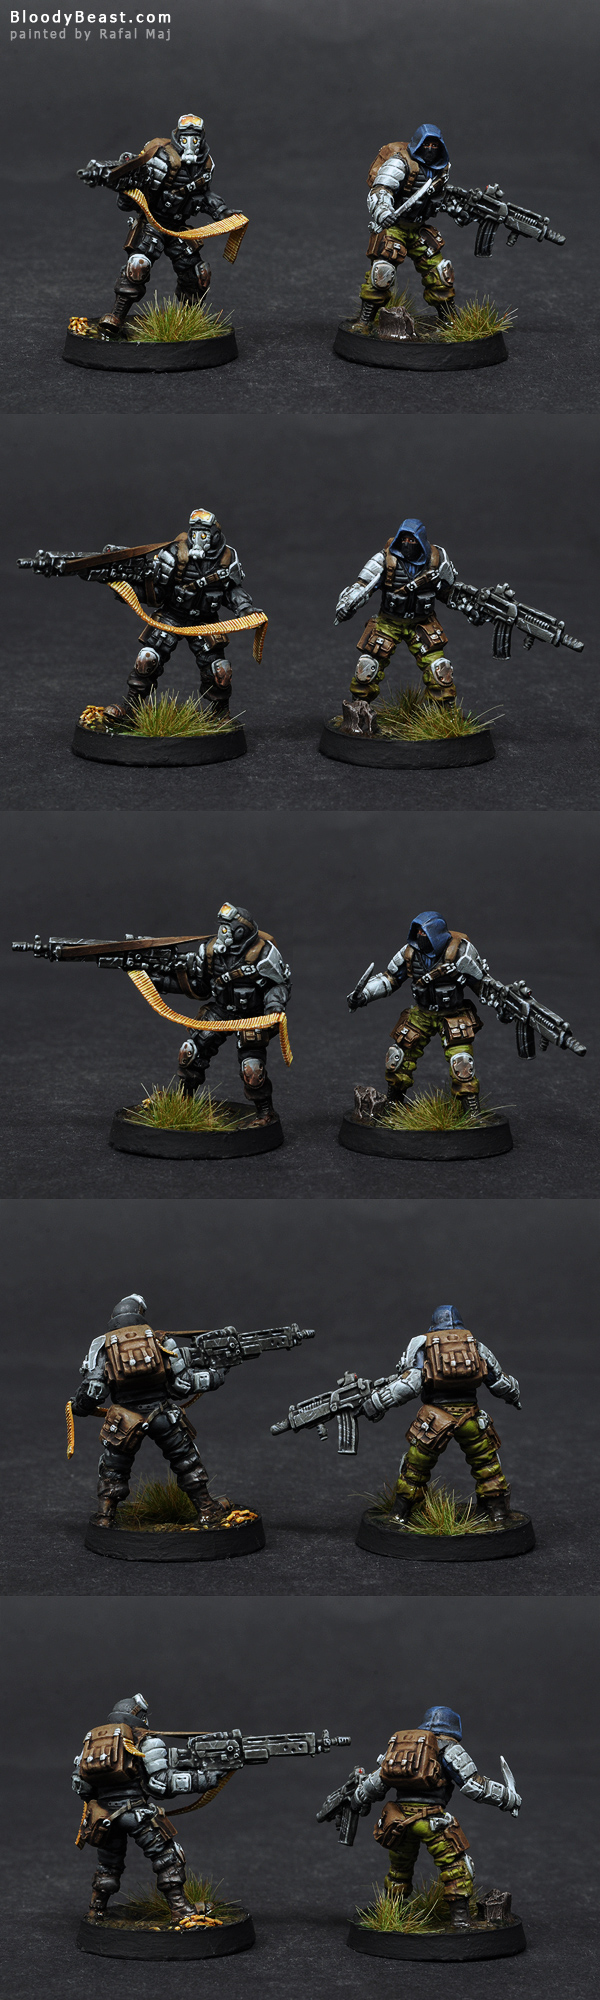 Ariadna Intel Spec Ops converted and painted by Rafal Maj (BloodyBeast.com)